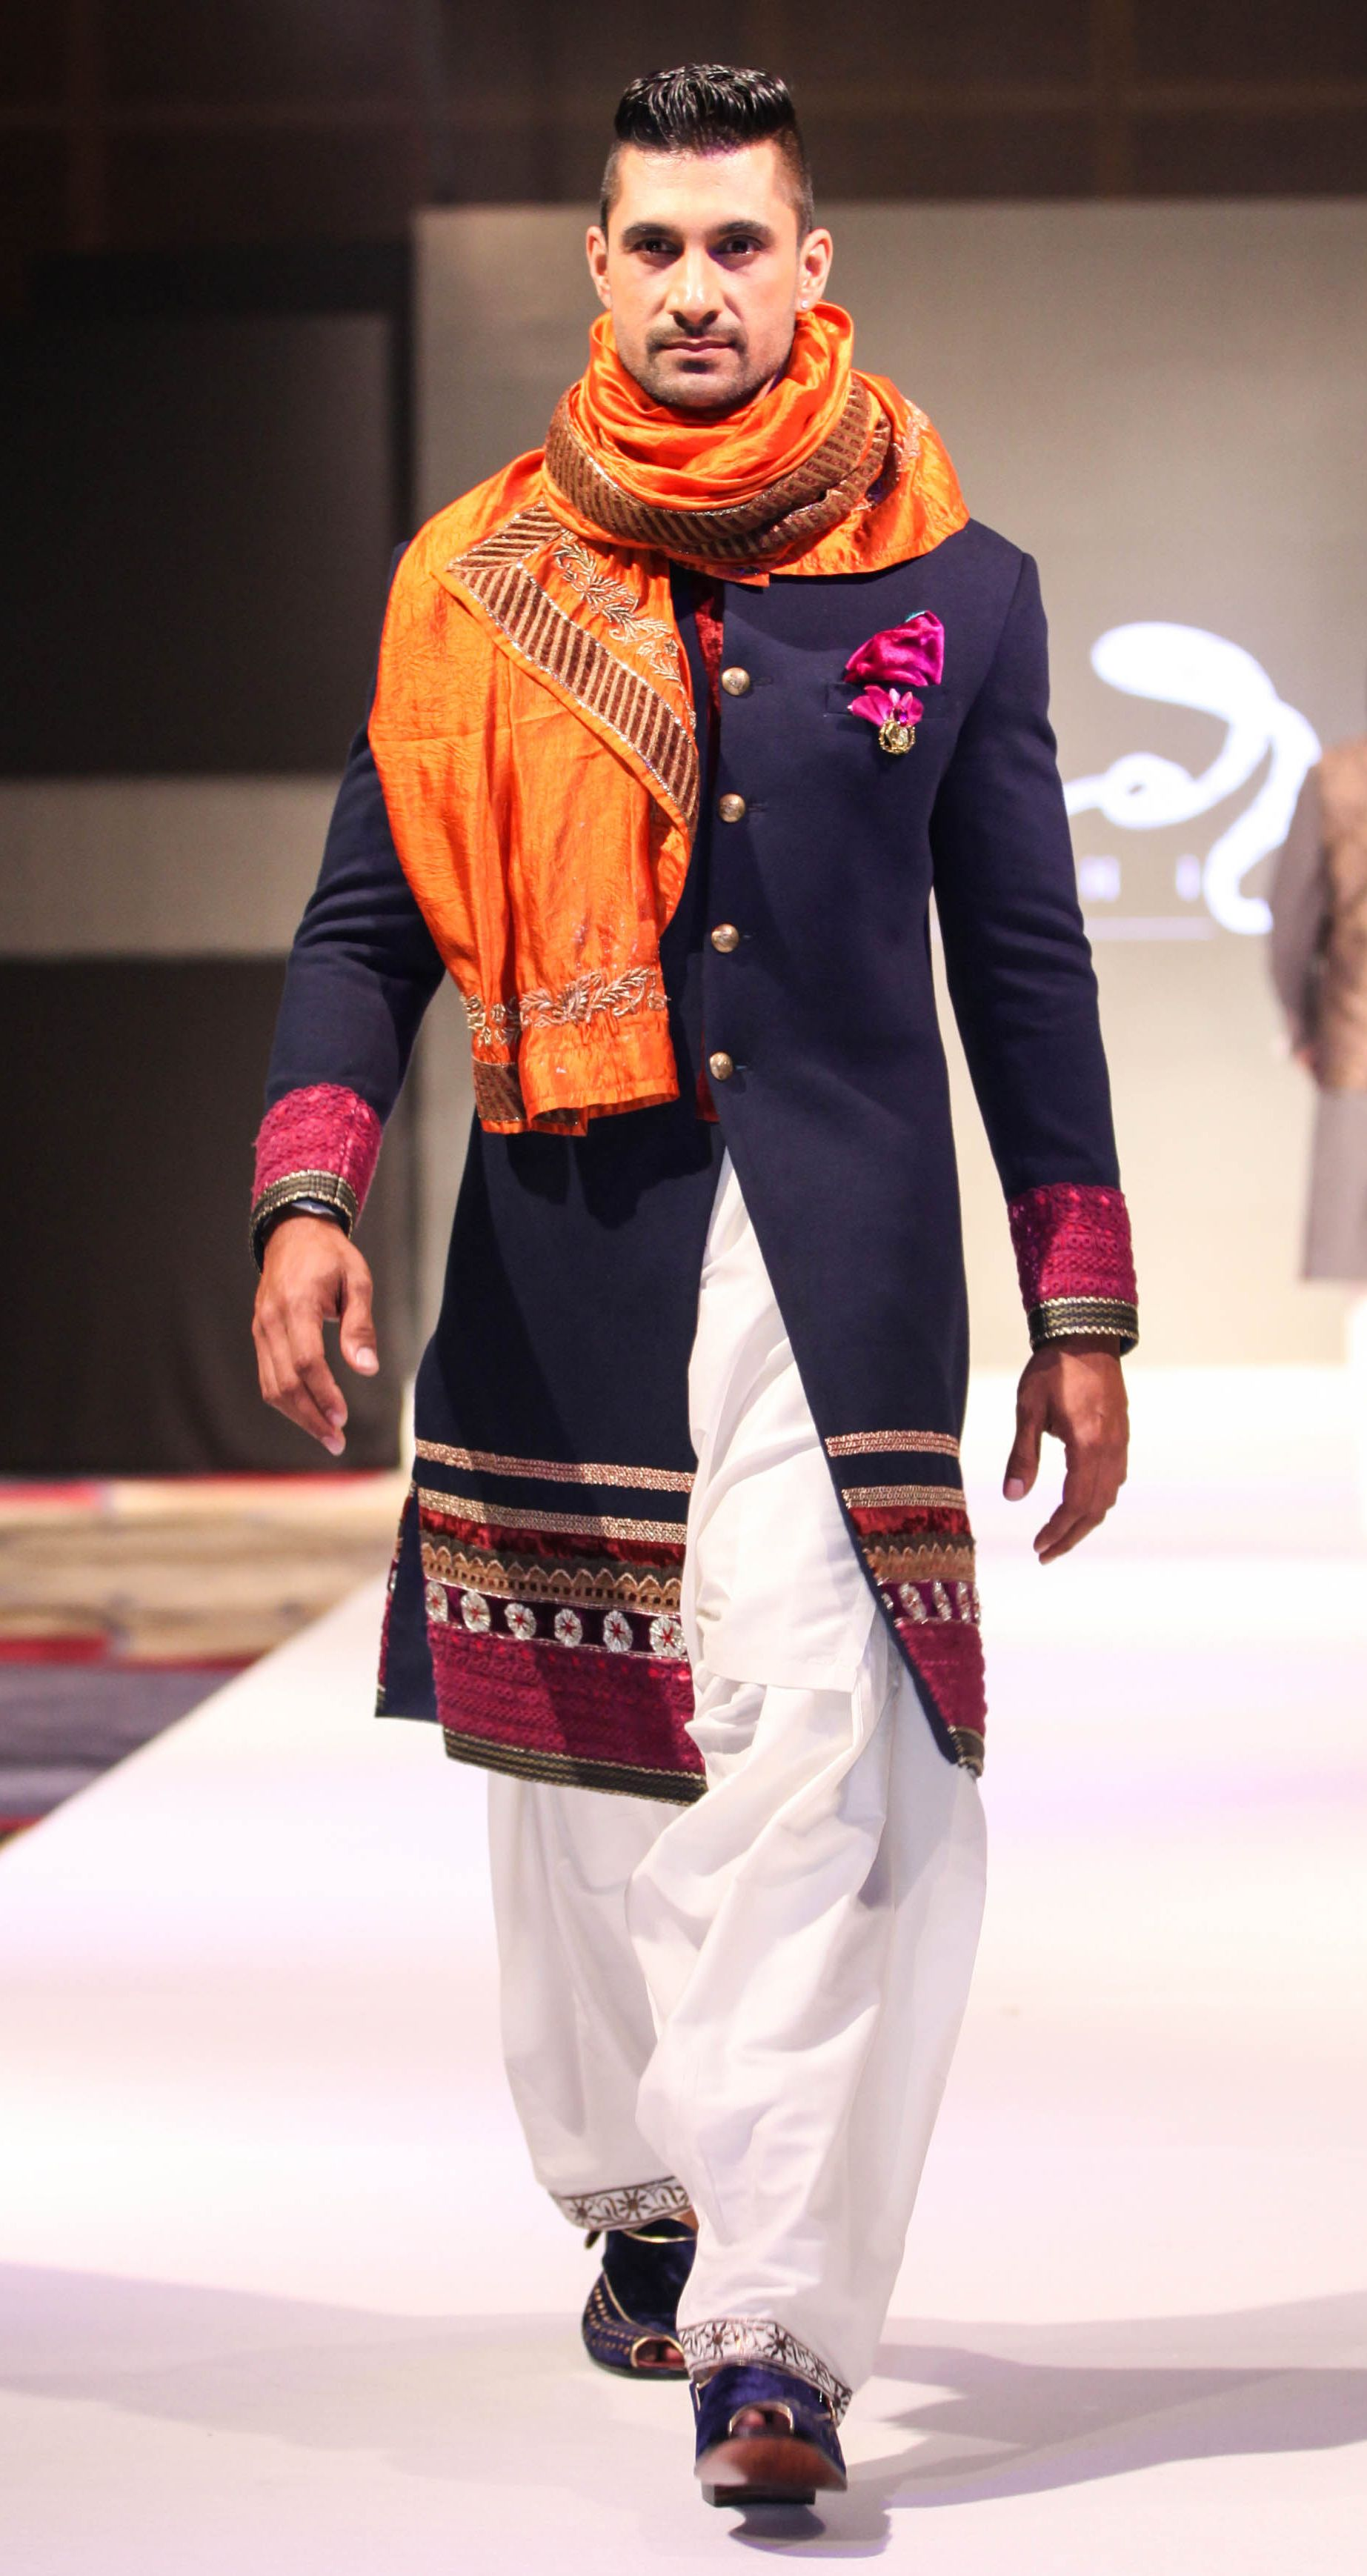 More Mischief Dxb Indian Fashion Show Indian Men Fashion Indian Groom Wear Men Fashion Show